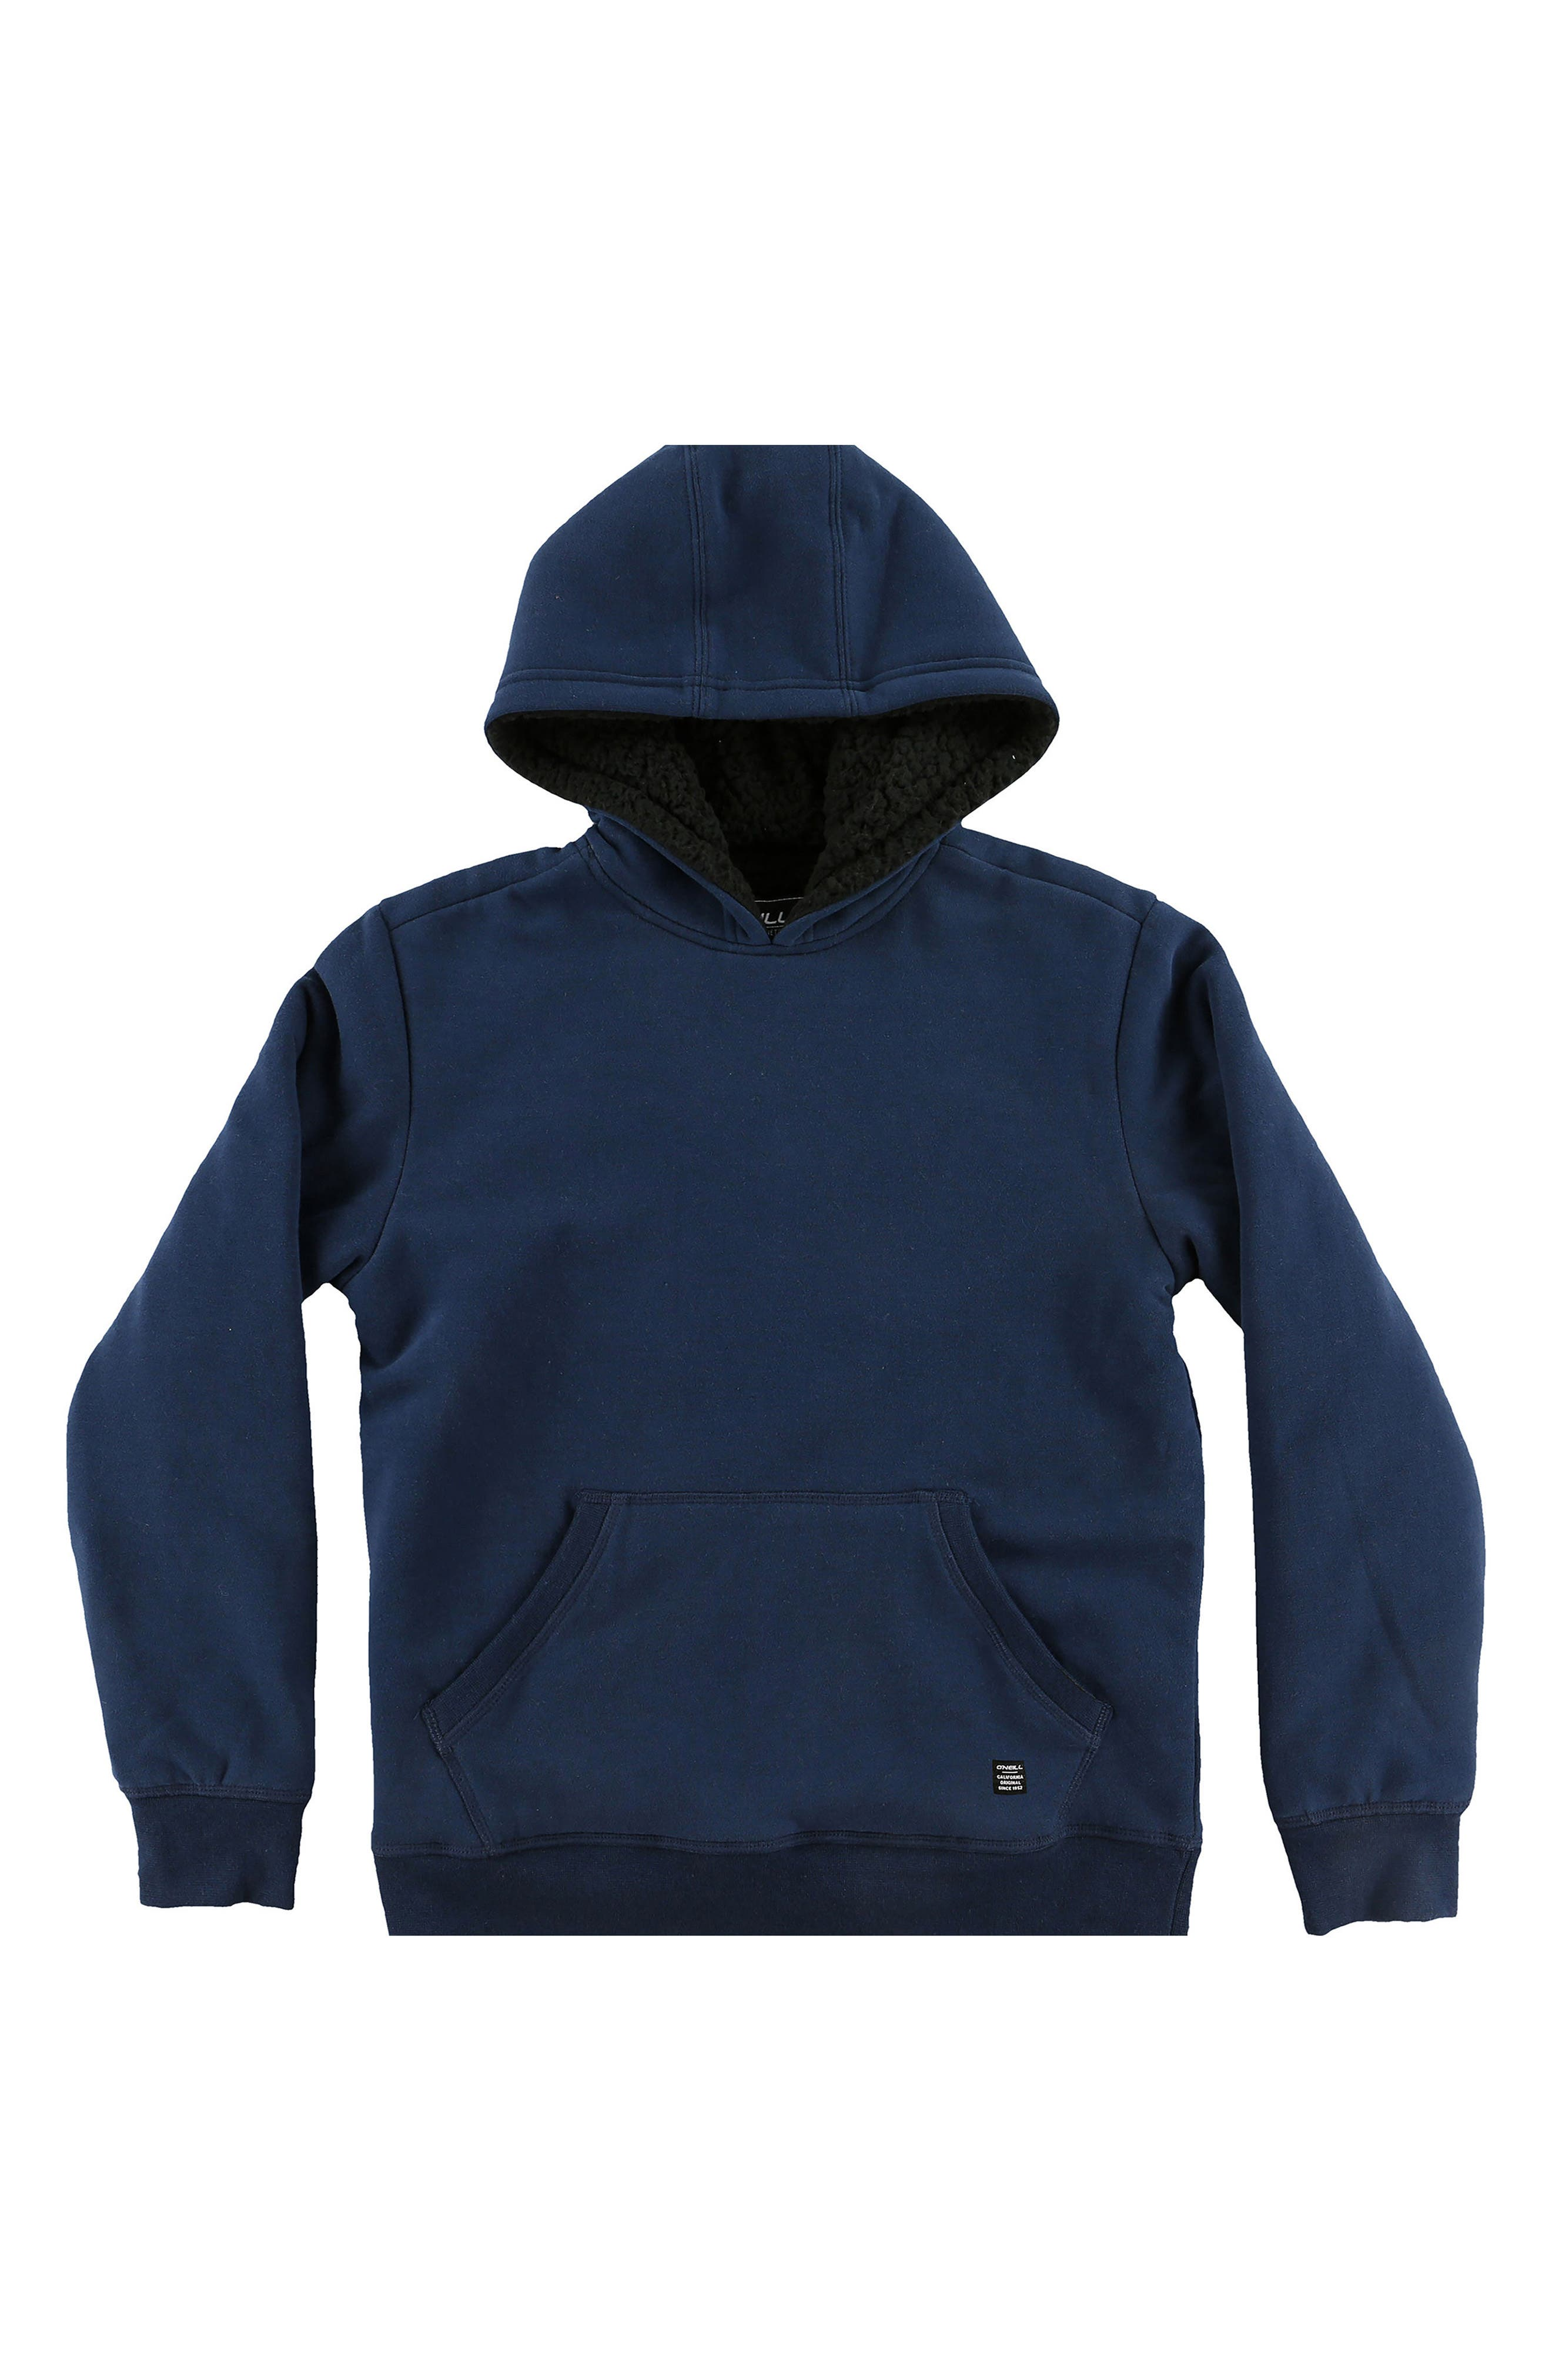 Alternate Image 1 Selected - O'Neill Staple Plush Lined Pullover Hoodie (Big Boys)